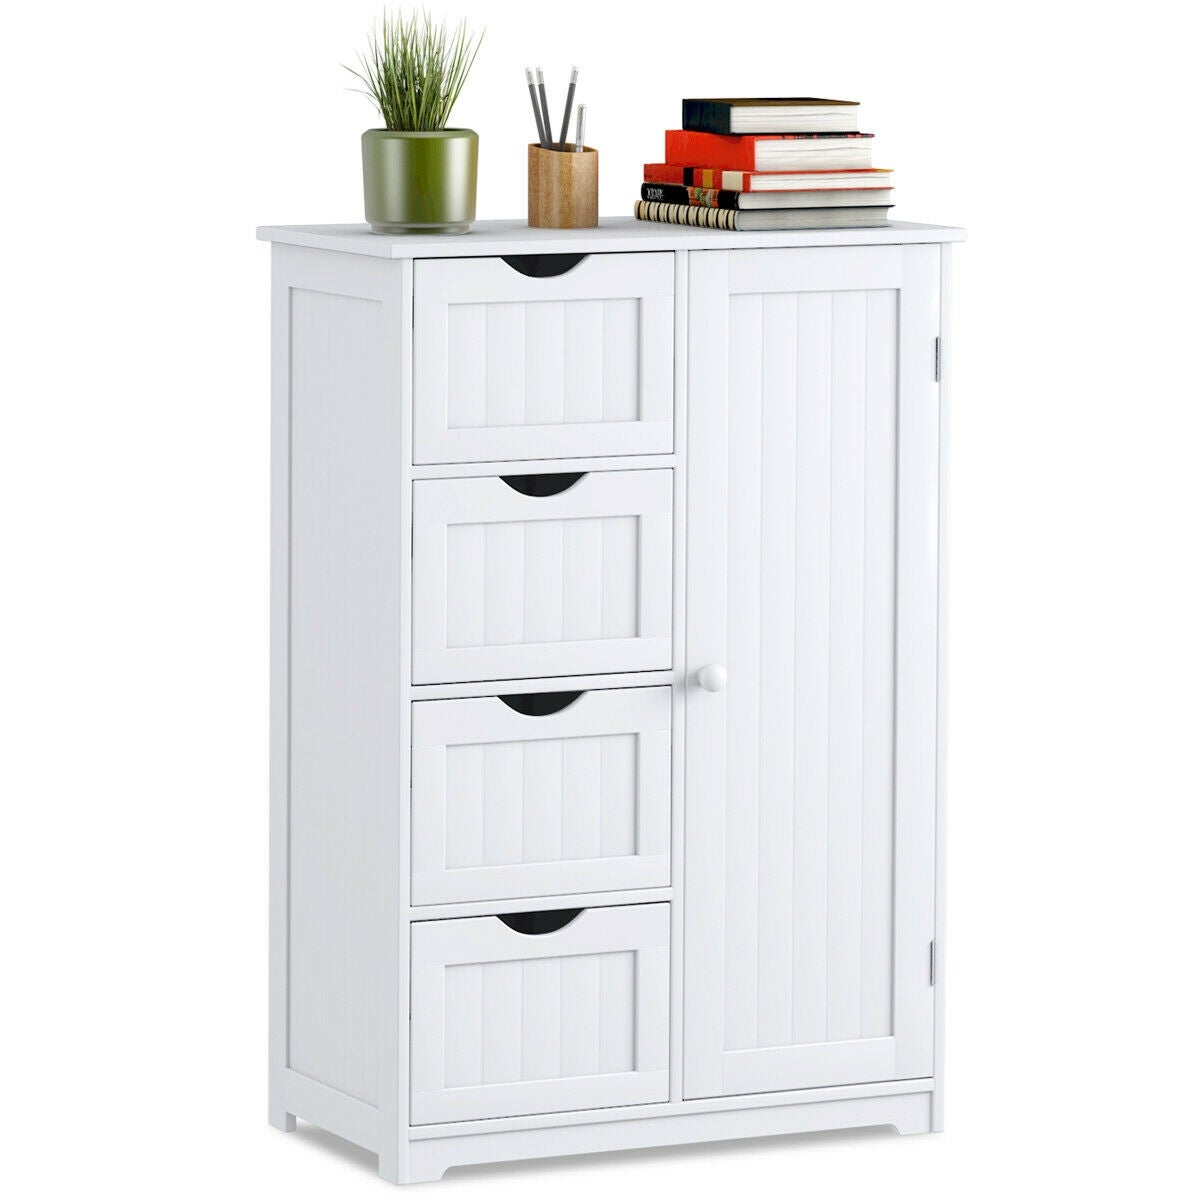 Costway Wooden 4 Drawer Bathroom Cabinet Storage Cupboard 2 Shelves Free Standing White in size 1200 X 1200